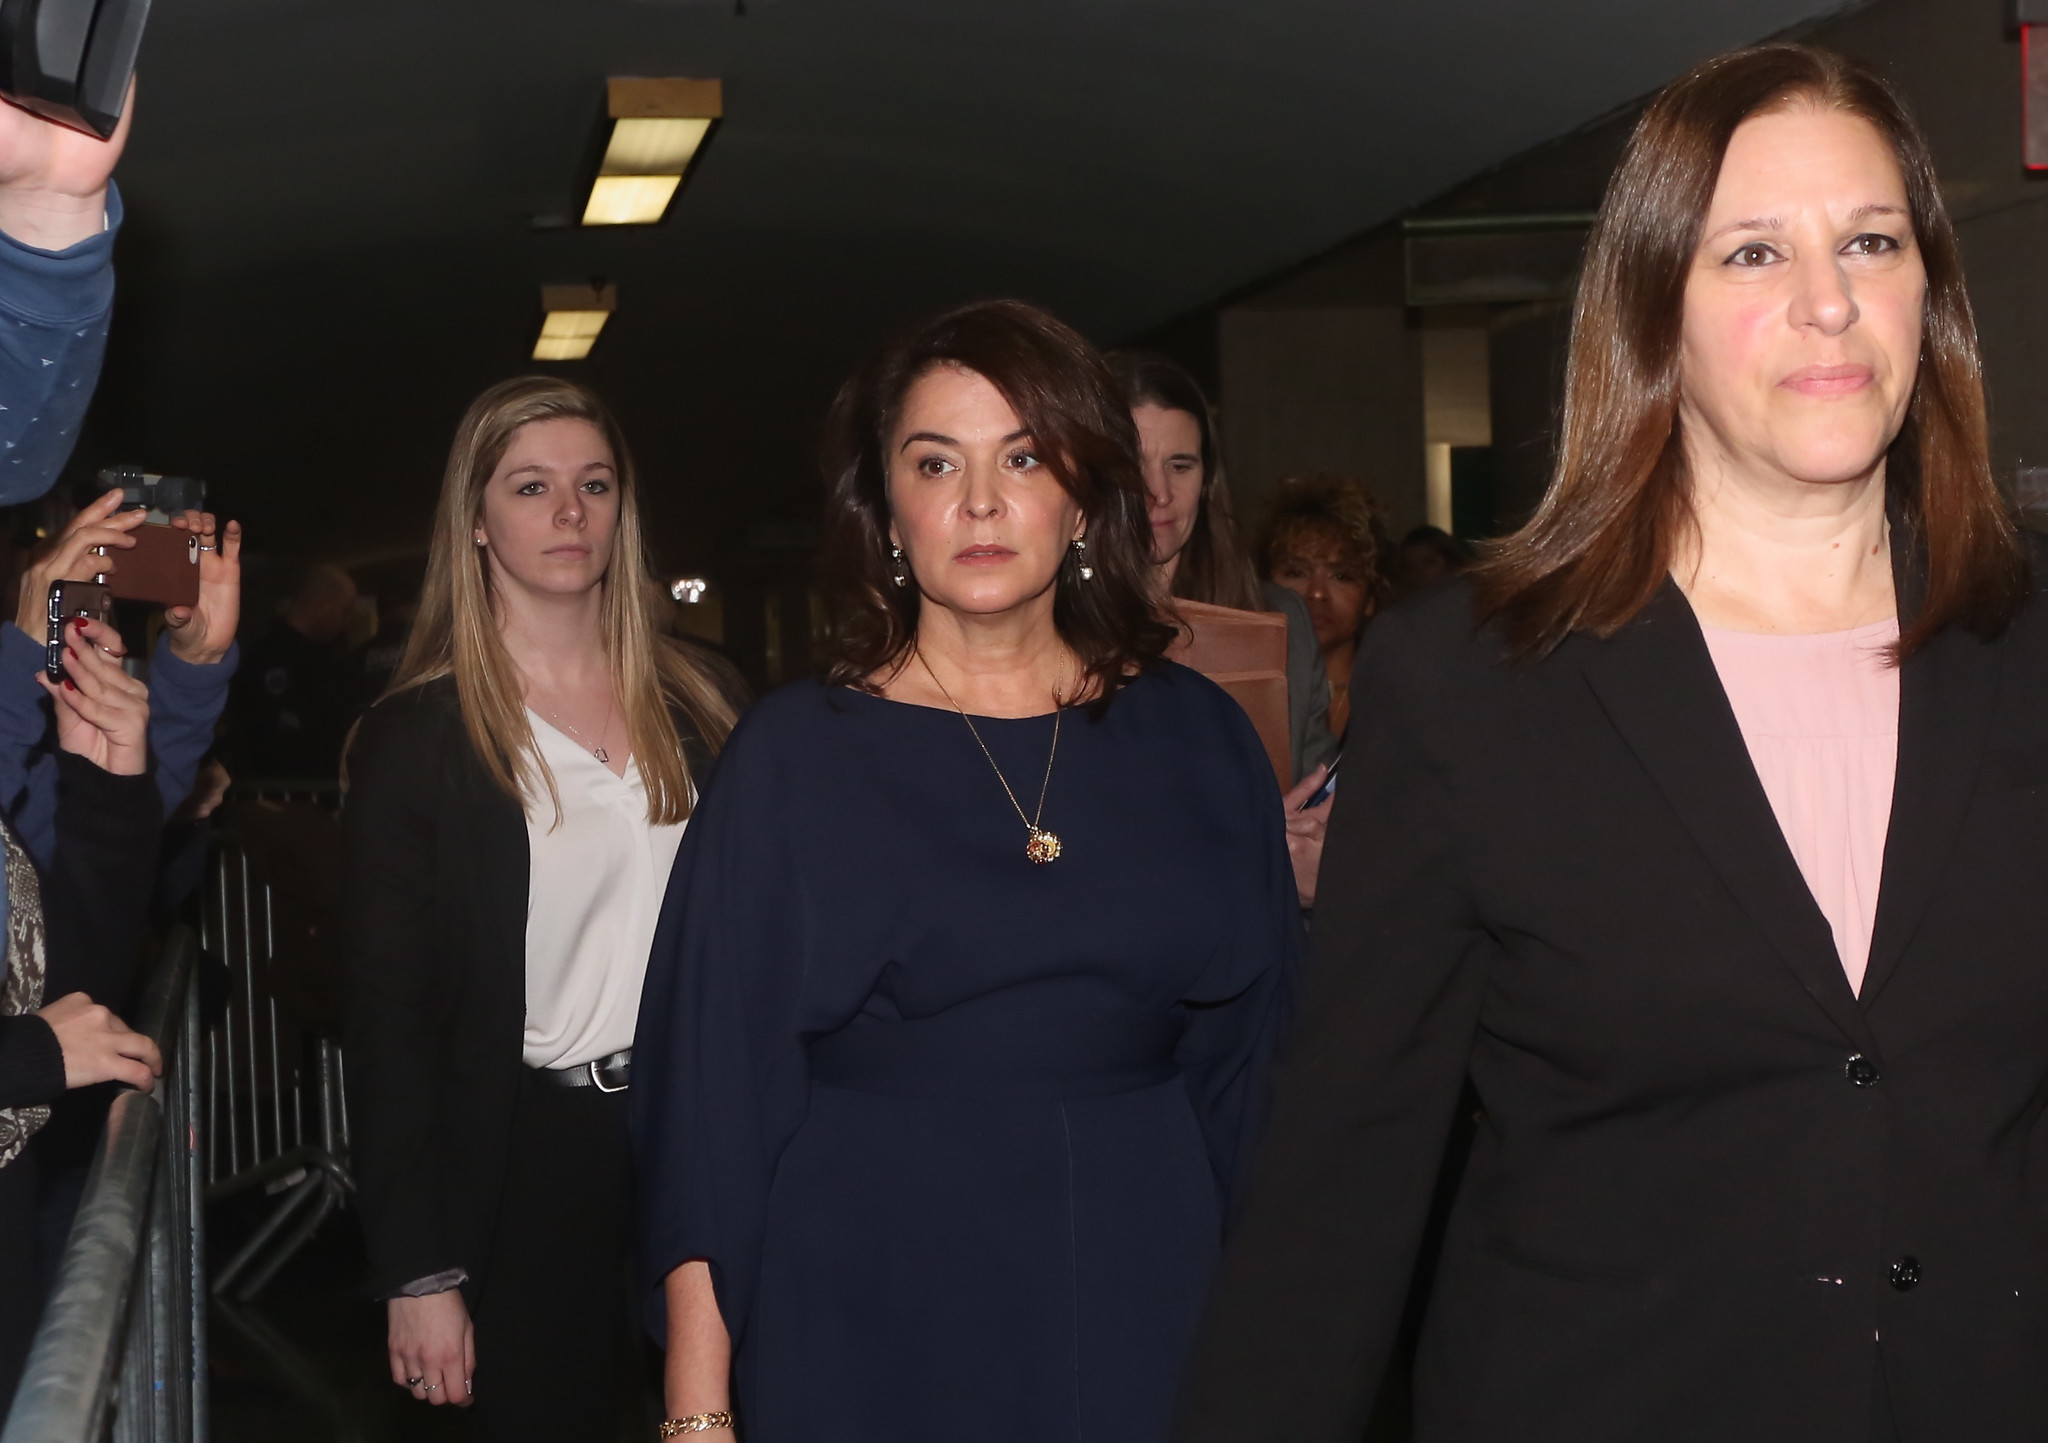 Annabella Sciorra stares Harvey Weinstein down in court, details her allege...